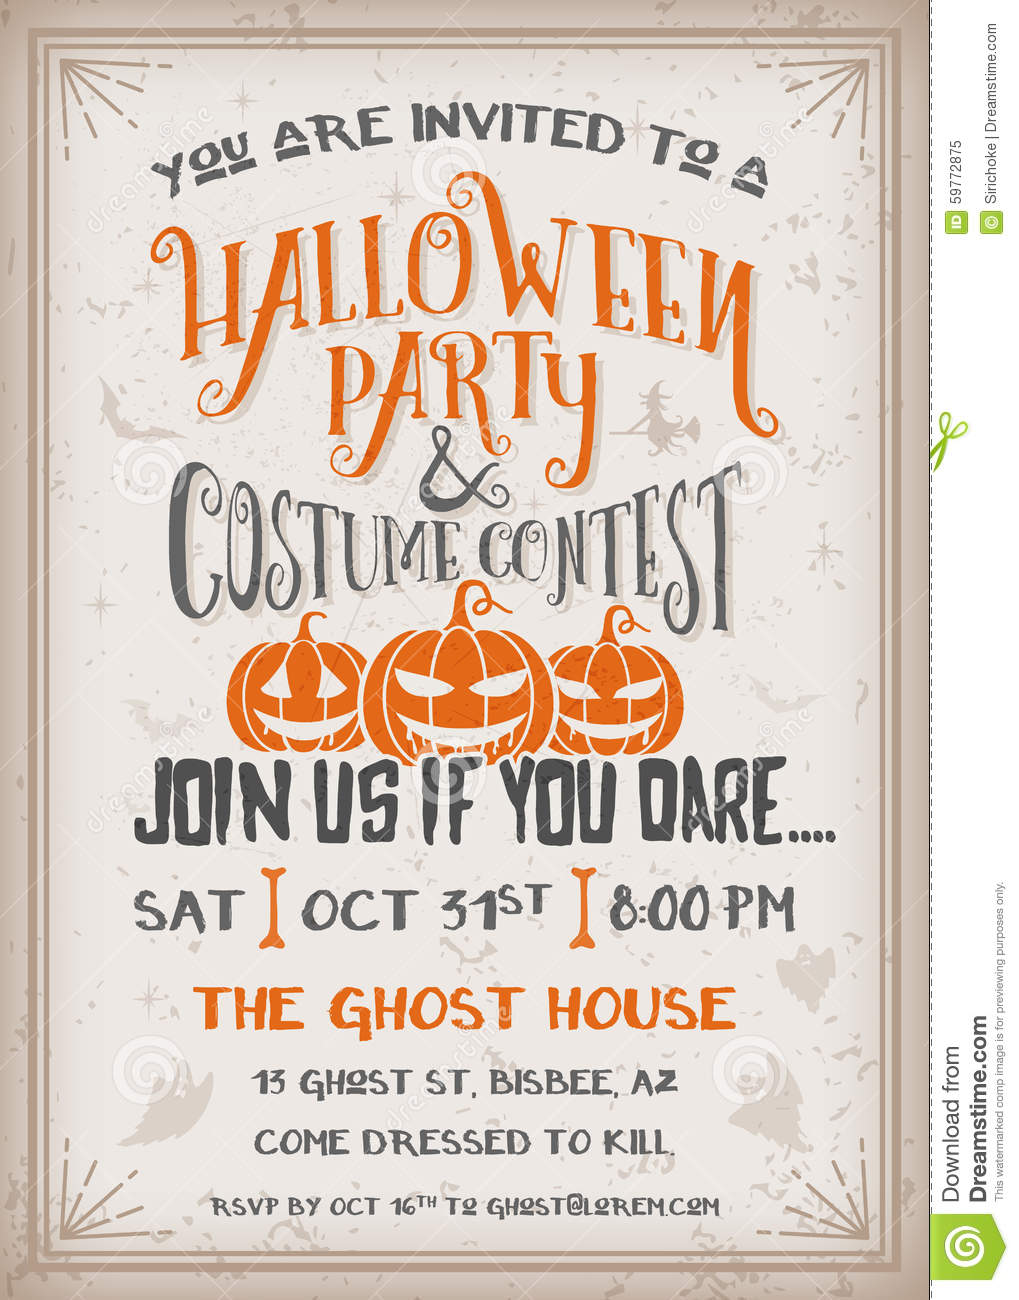 Halloween Party And Costume Contest Invitation Stock Vector